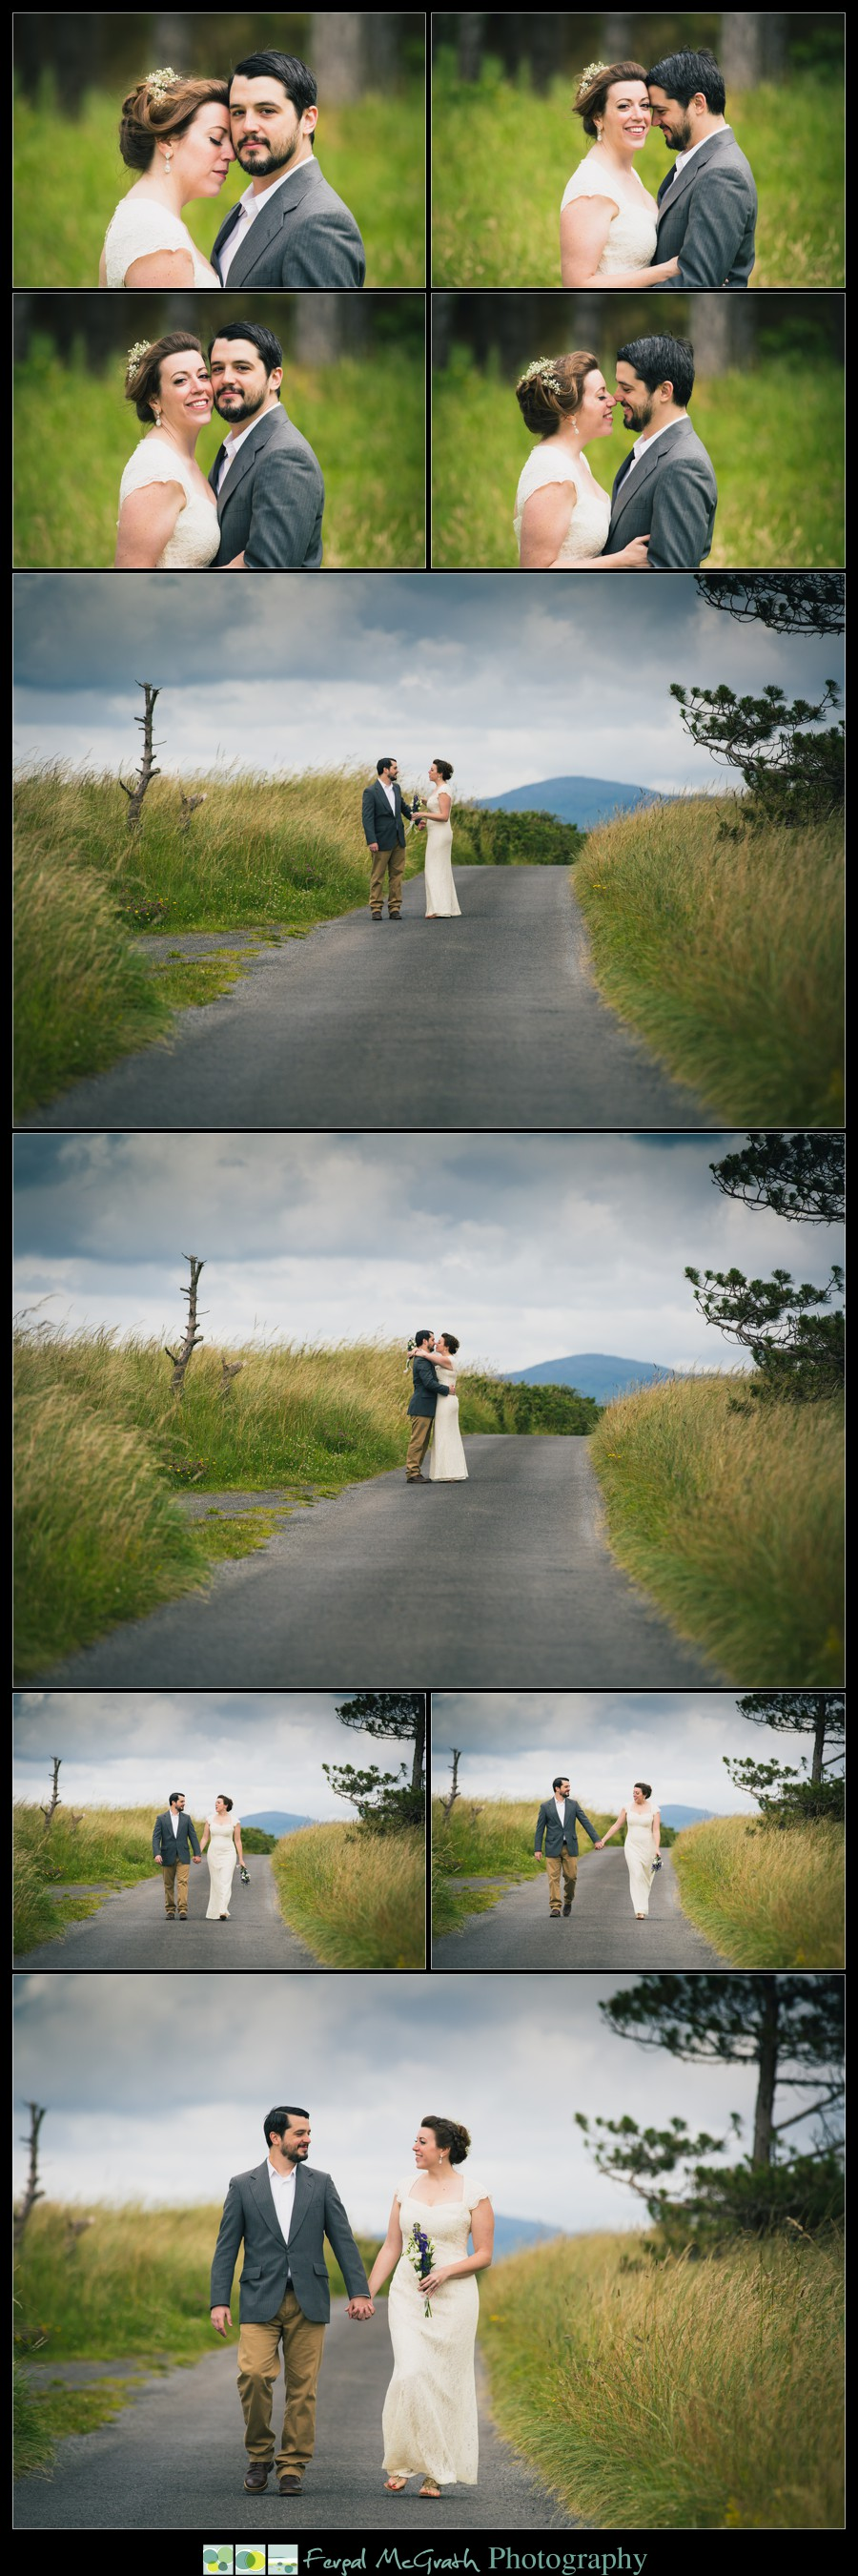 Donegal Wedding Photography bride and groom holding hands walking along a country lane